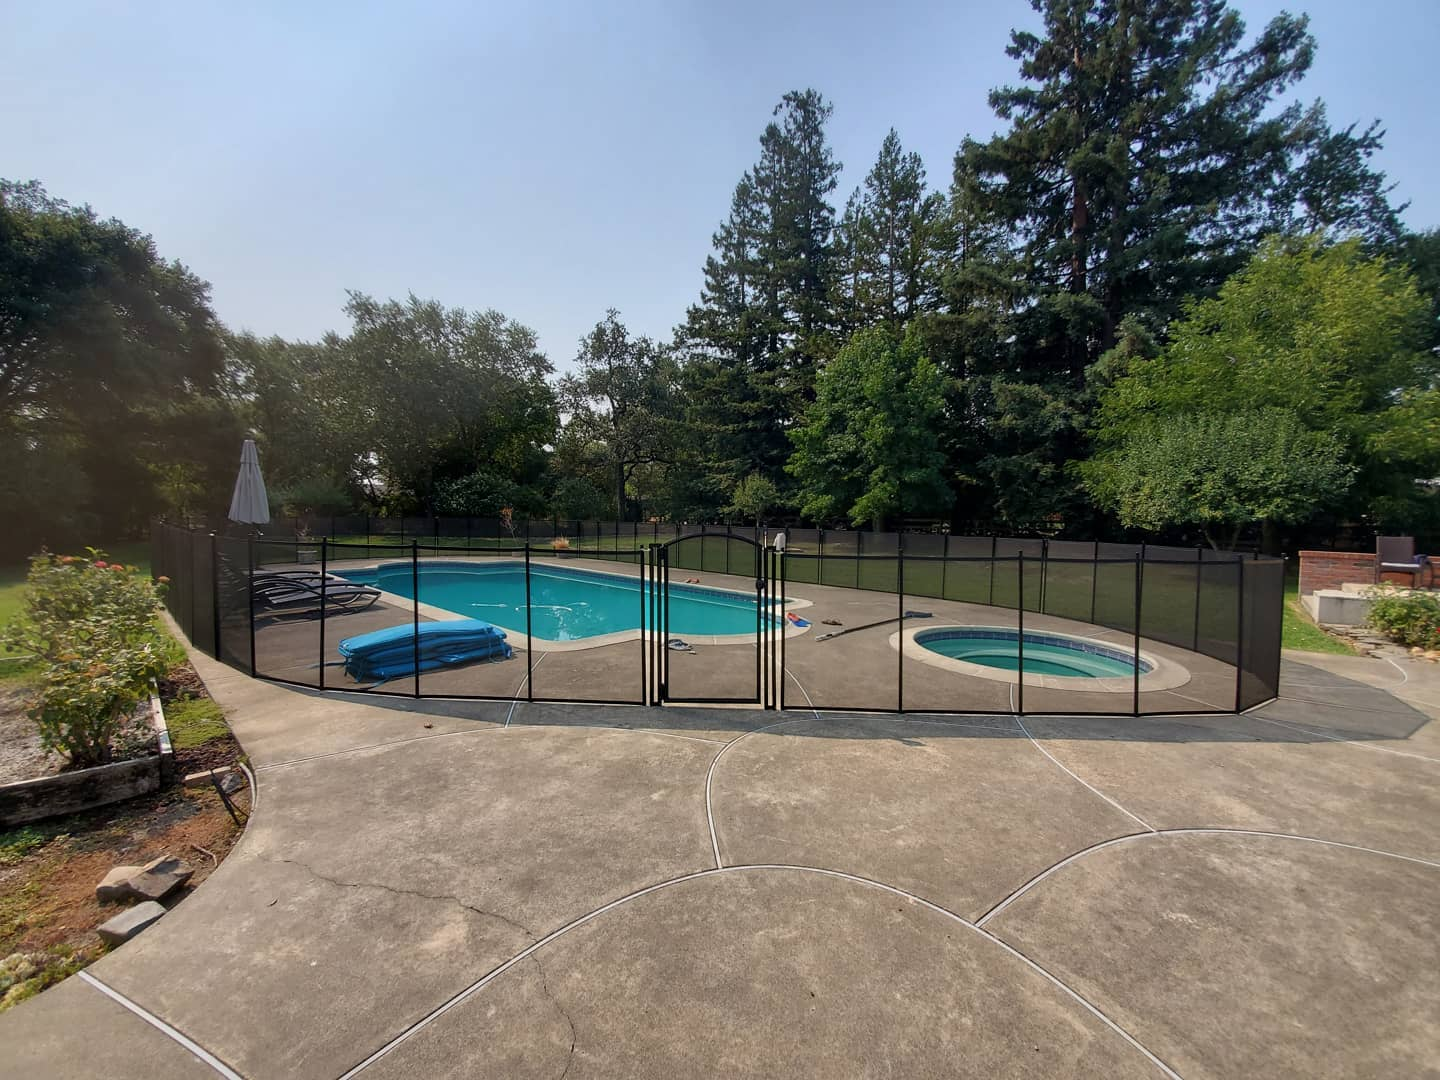 Life Saver mesh pool safety fence installed in Metairie, Louisiana